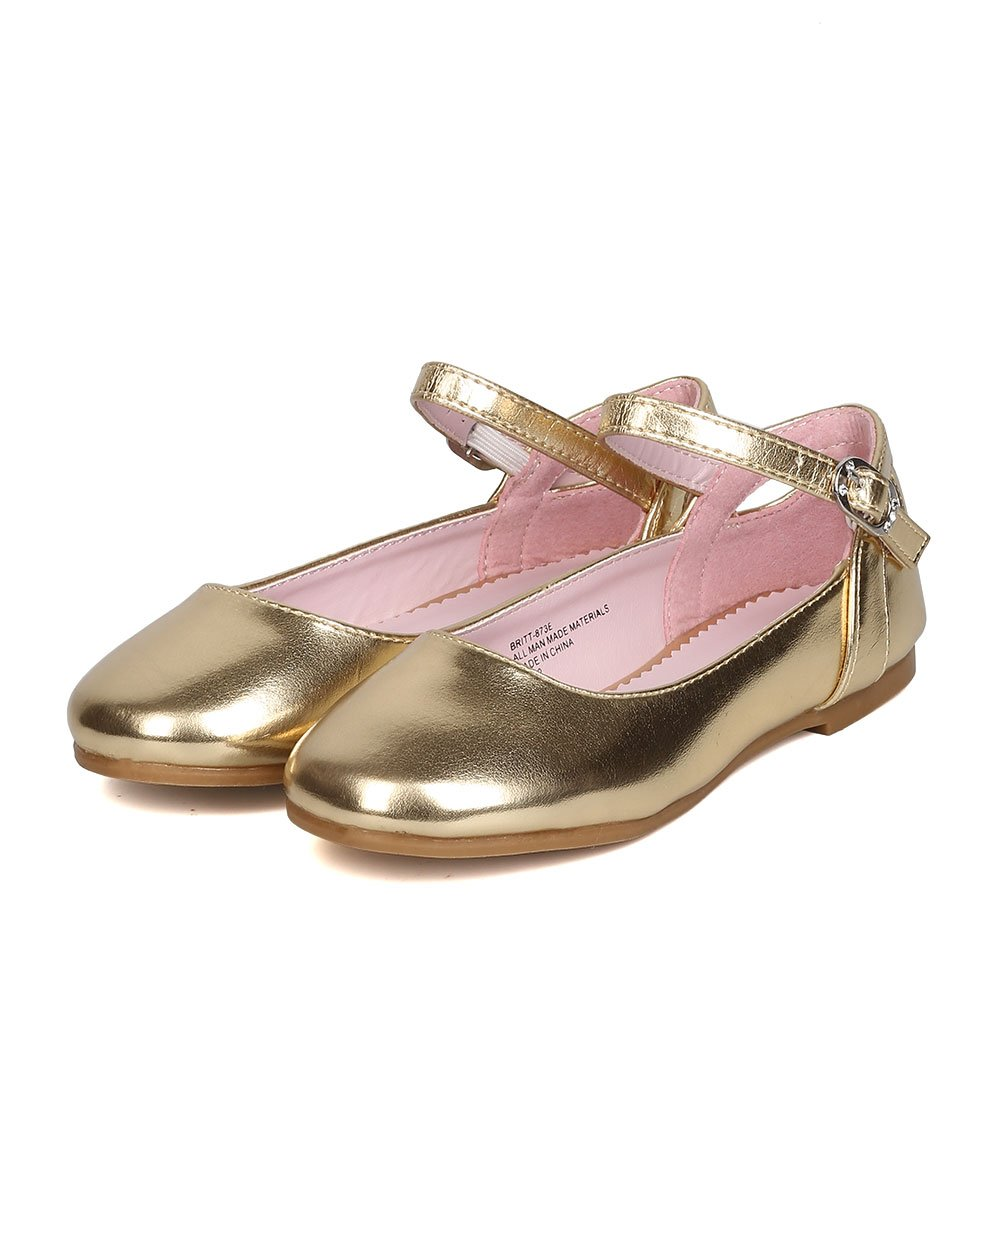 Girls Metallic Leatherette Ankle Strap Cut Out Ballet Flat GB36 - Gold (Size: Toddler 8) by Little Angel (Image #5)